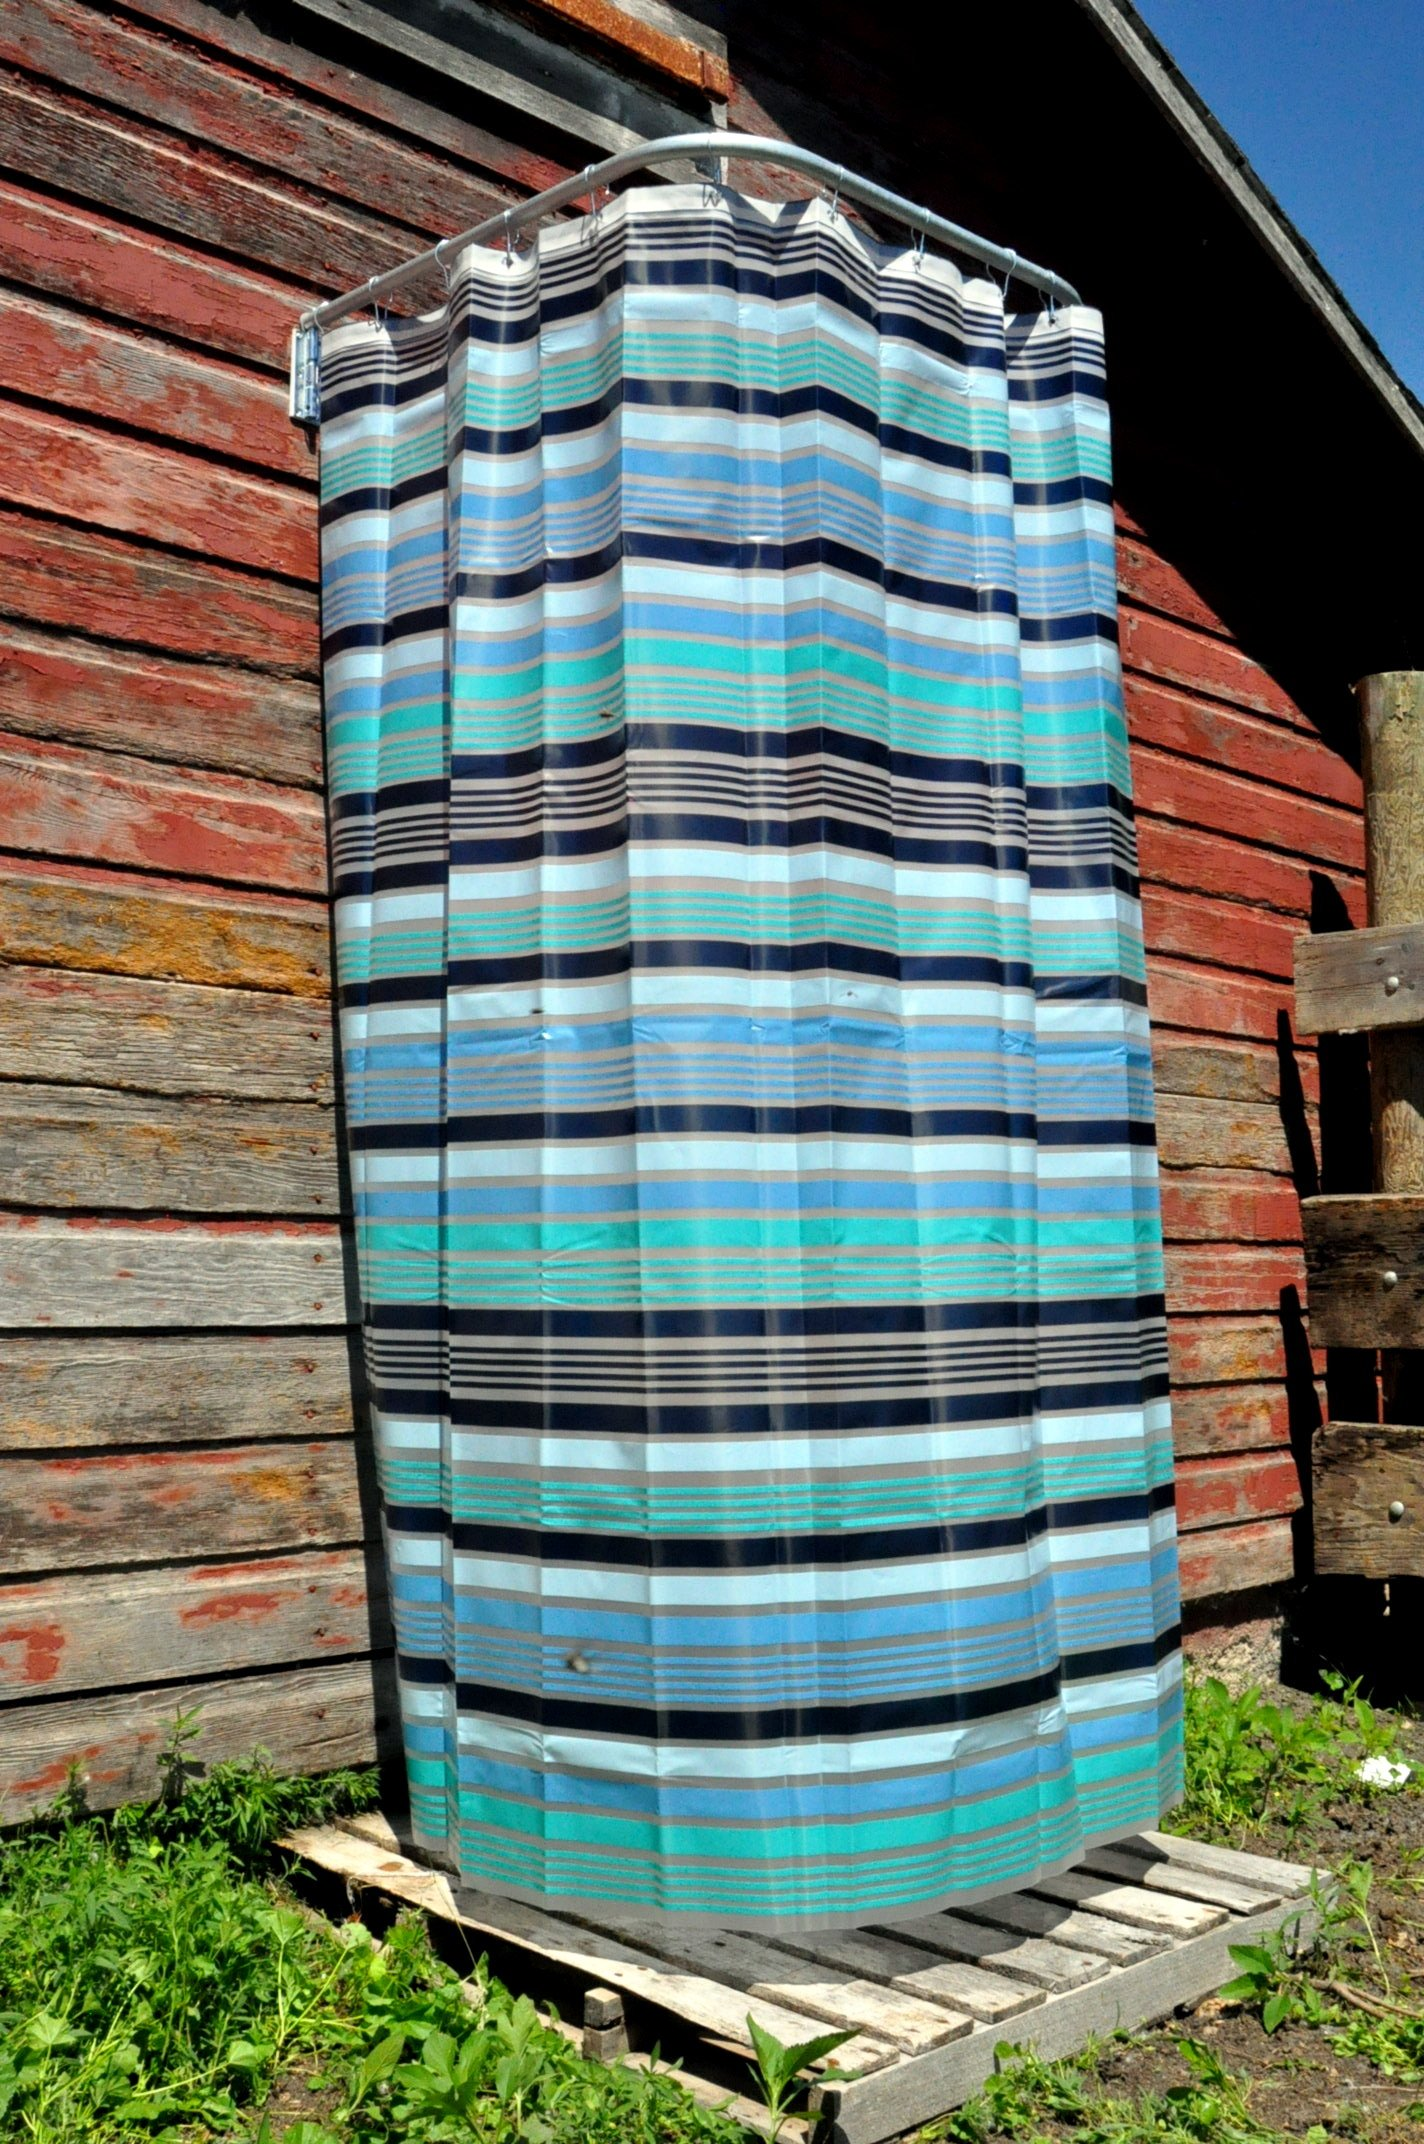 Aberdeen Parts Store 32'' Indoor Outdoor Removable Shower Curtain Rod - Heavy Duty by Aberdeen Parts Store (Image #2)